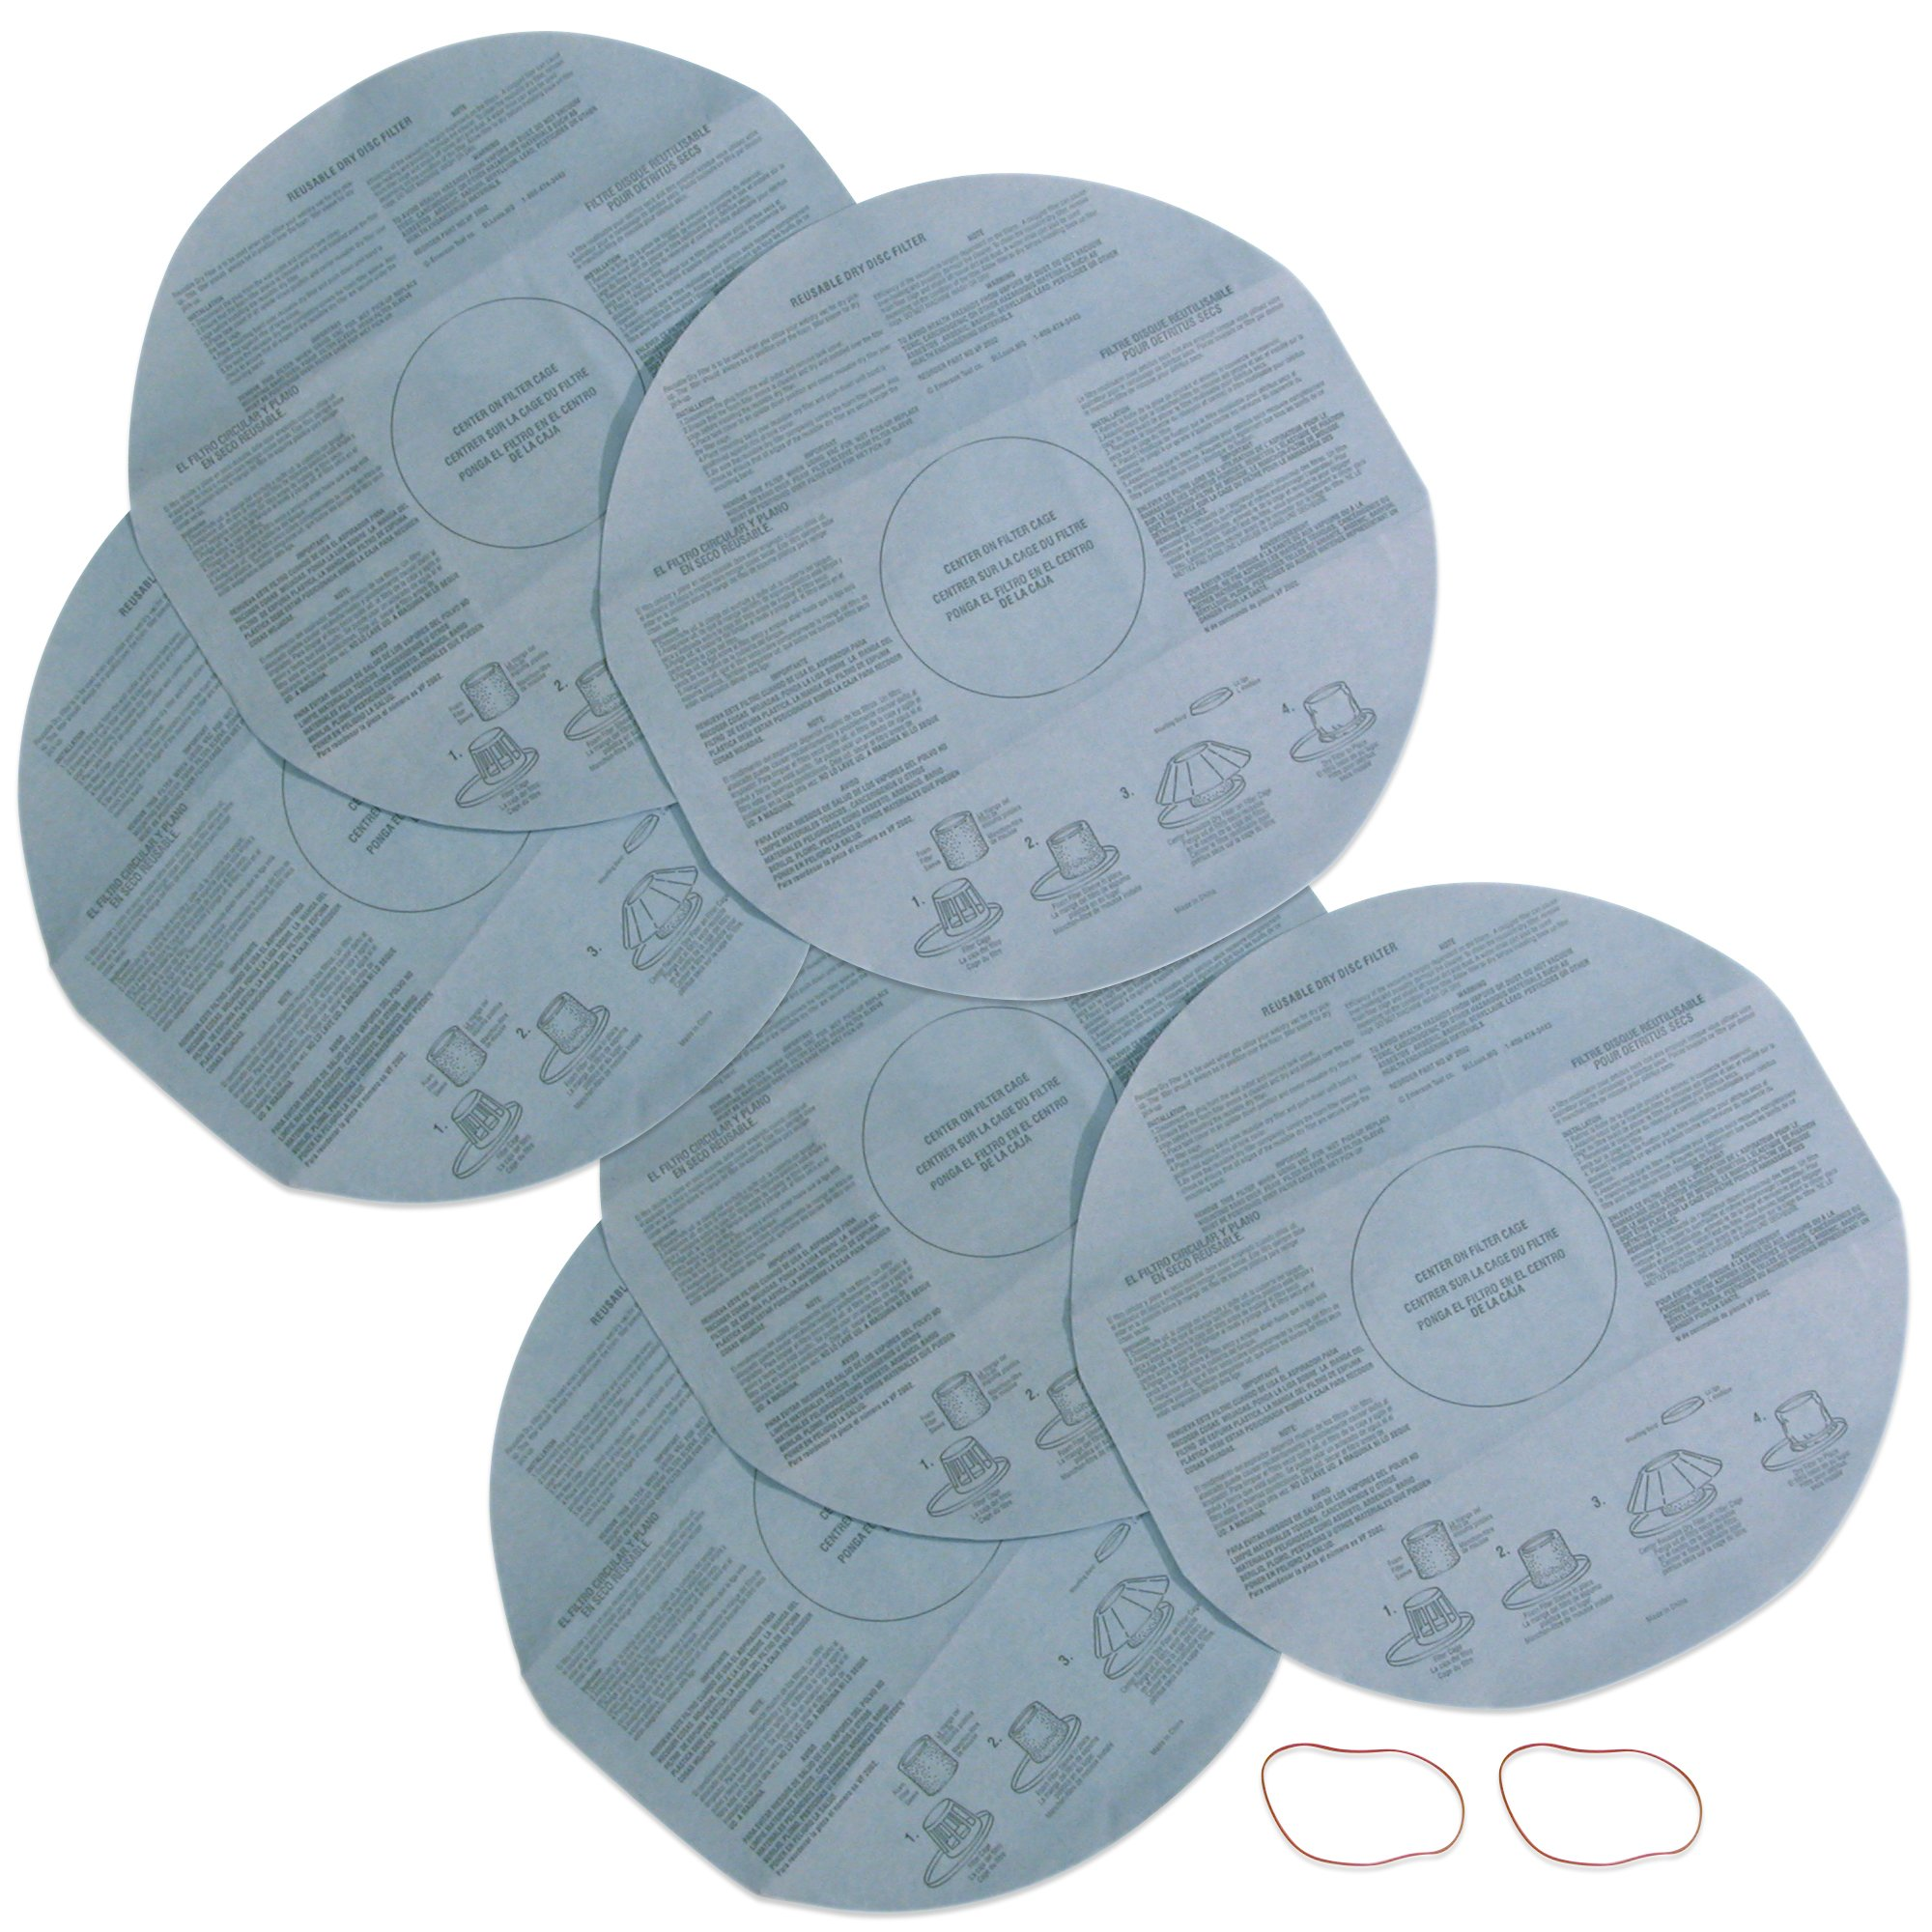 Multi-Fit Wet Dry Vac Filters VF2002TP Dry Vacuum Filters (2-Pack, 6 Shop Vacuum Cleaner Filters With Retaining Band) Dry Disc Filters For Most Shop-Vac, Vacmaster, Genie Shop Vacuum Cleaners by WORKSHOP Wet/Dry Vacs